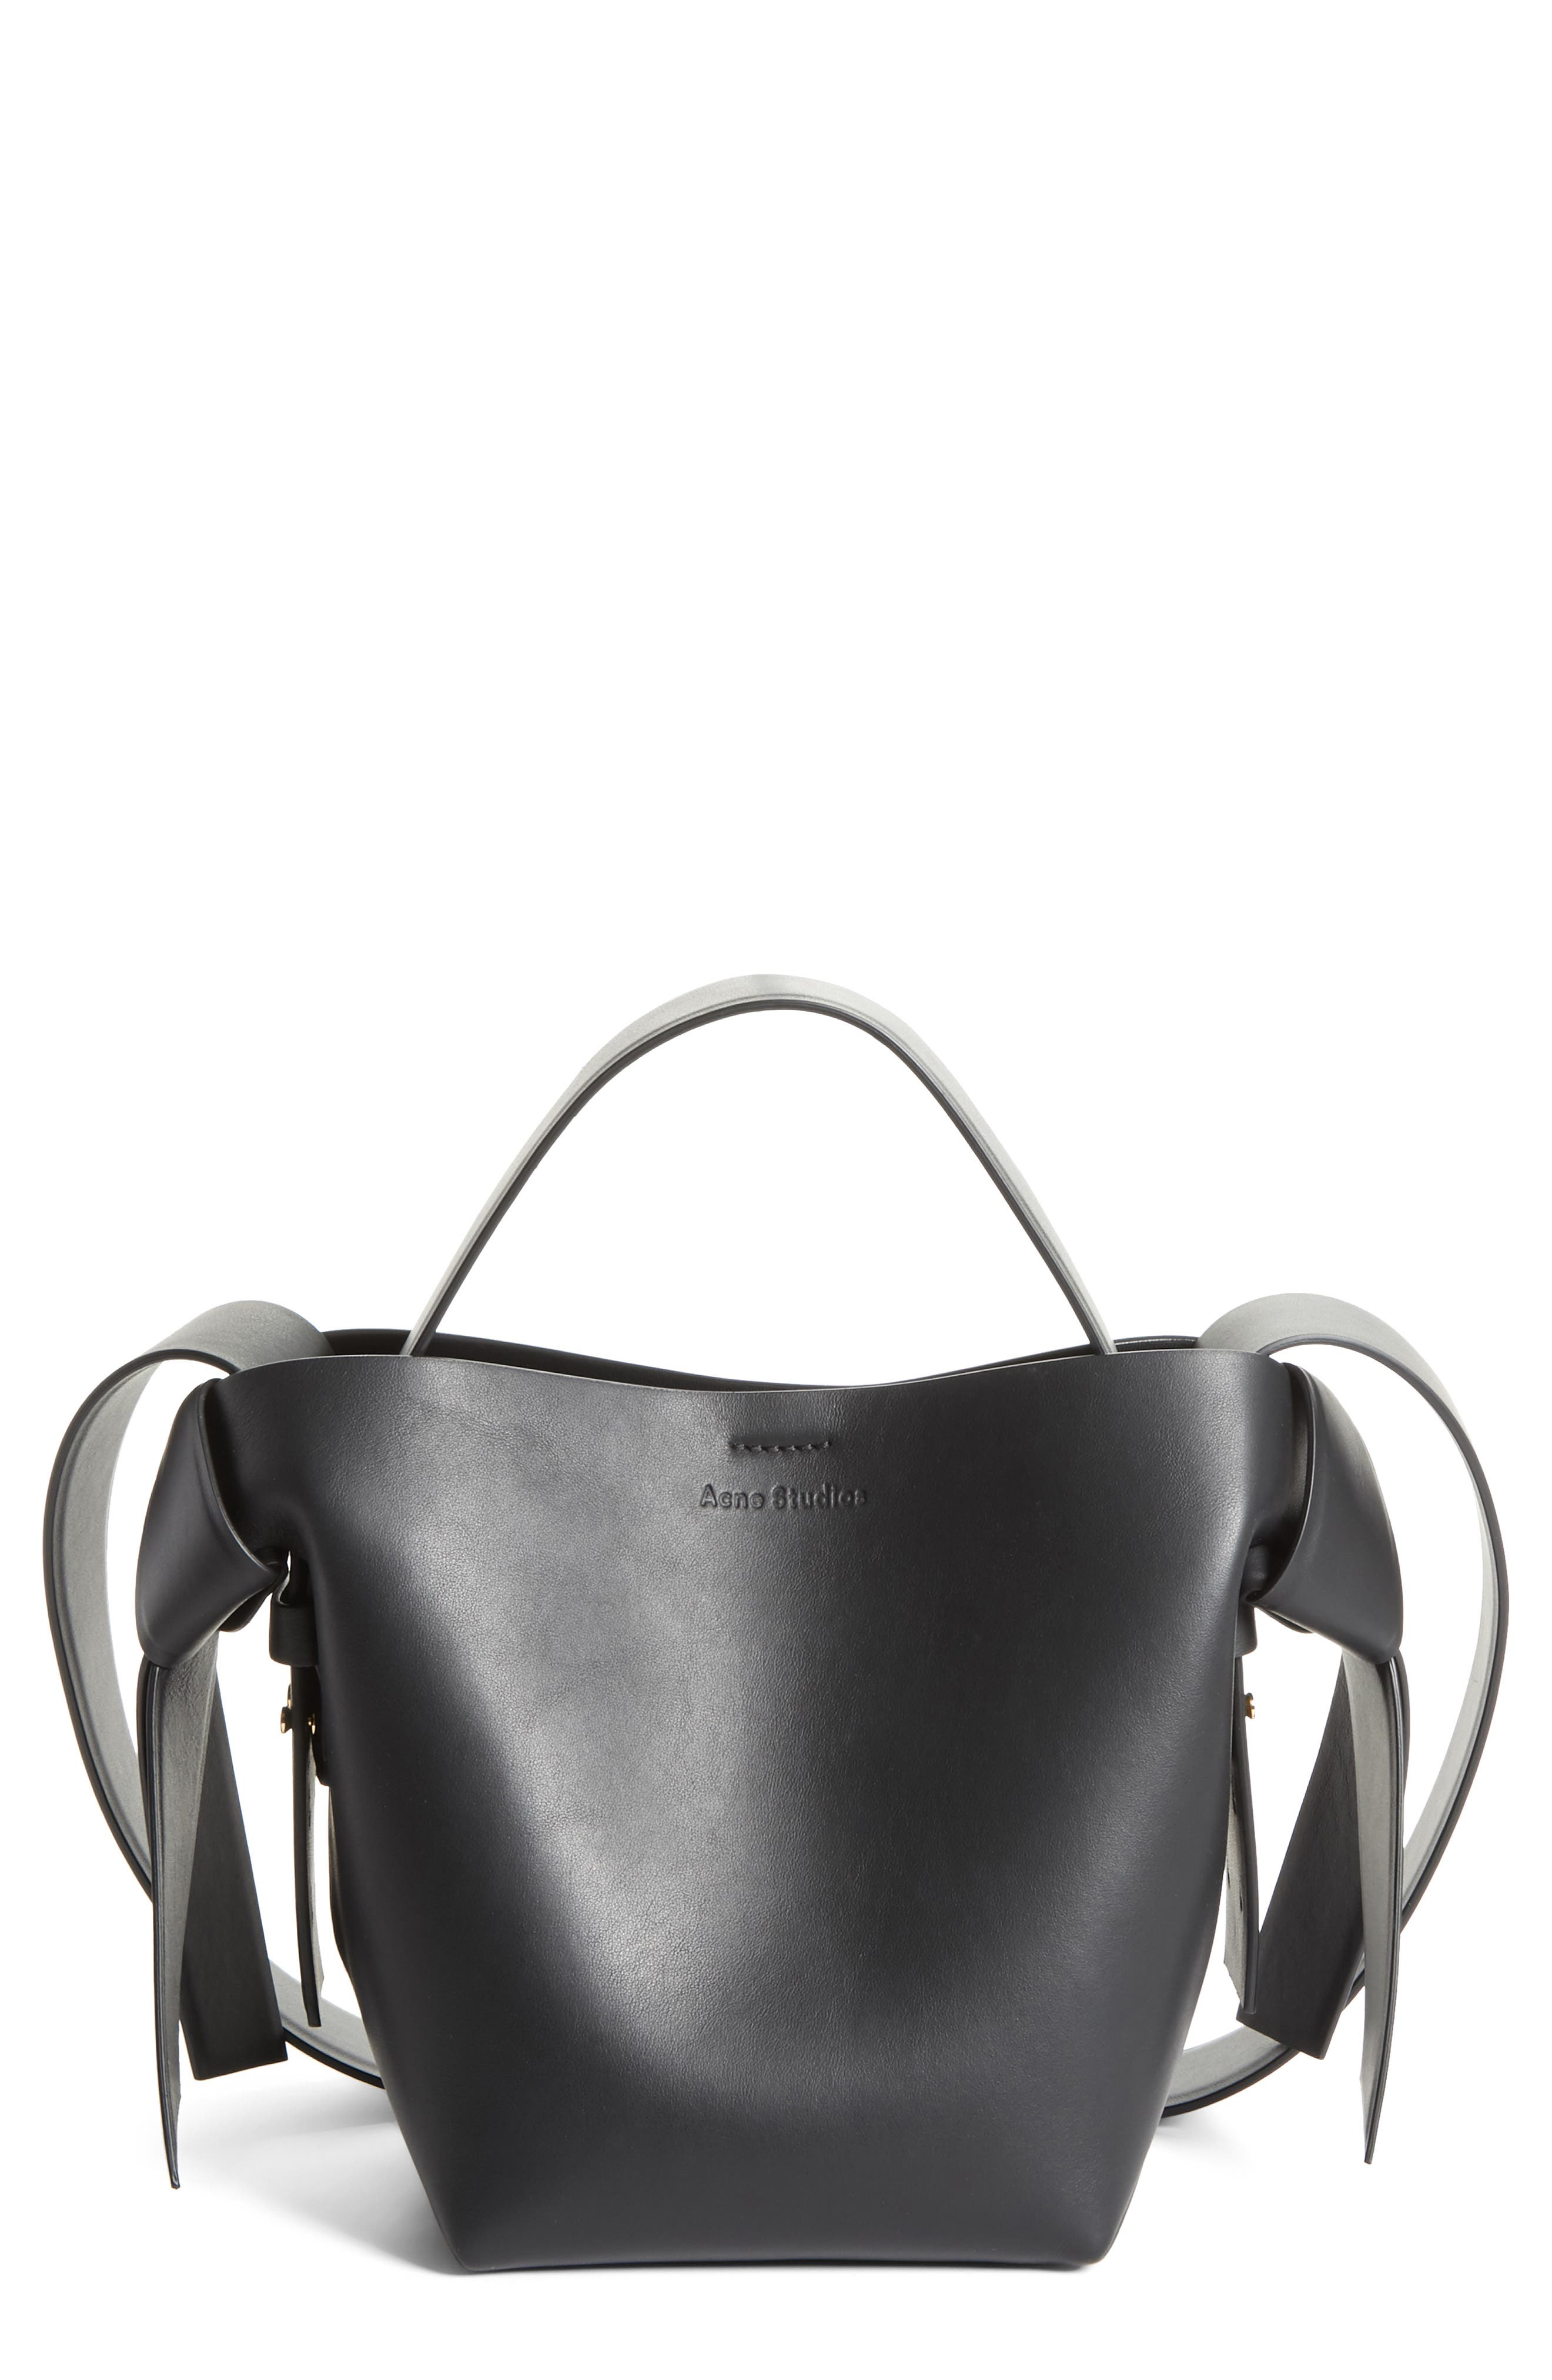 ACNE STUDIOS, Musubi Leather Mini Bag, Main thumbnail 1, color, BLACK